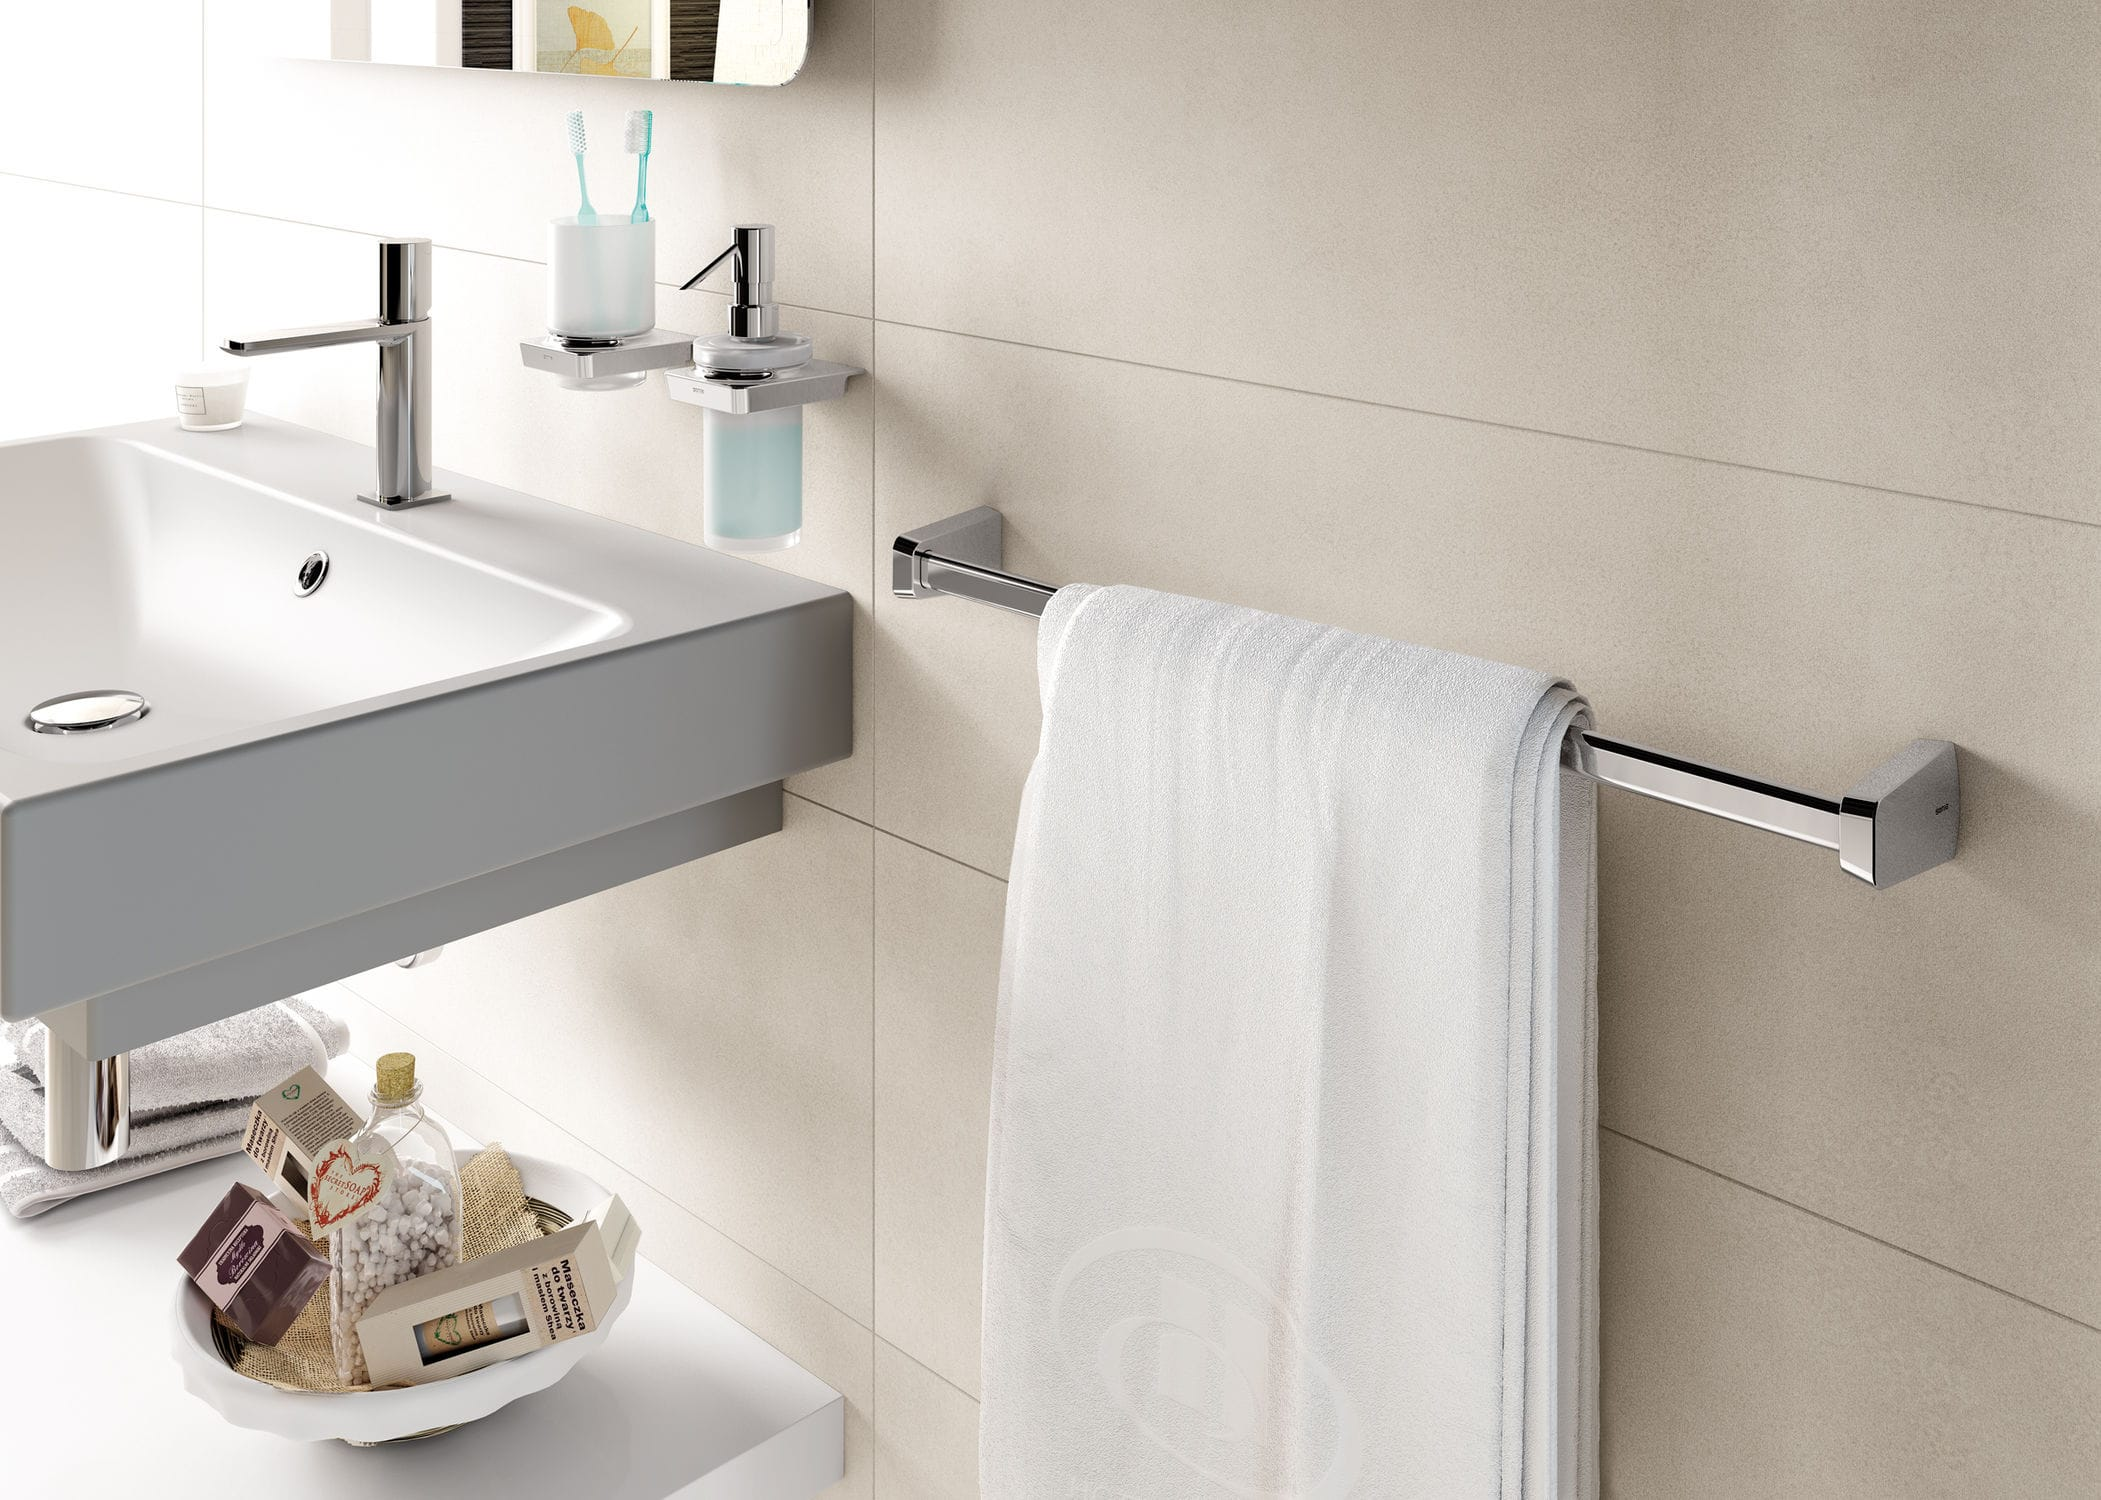 ... Commercial Soap Dispenser / Wall Mounted / Metal / Manual ...